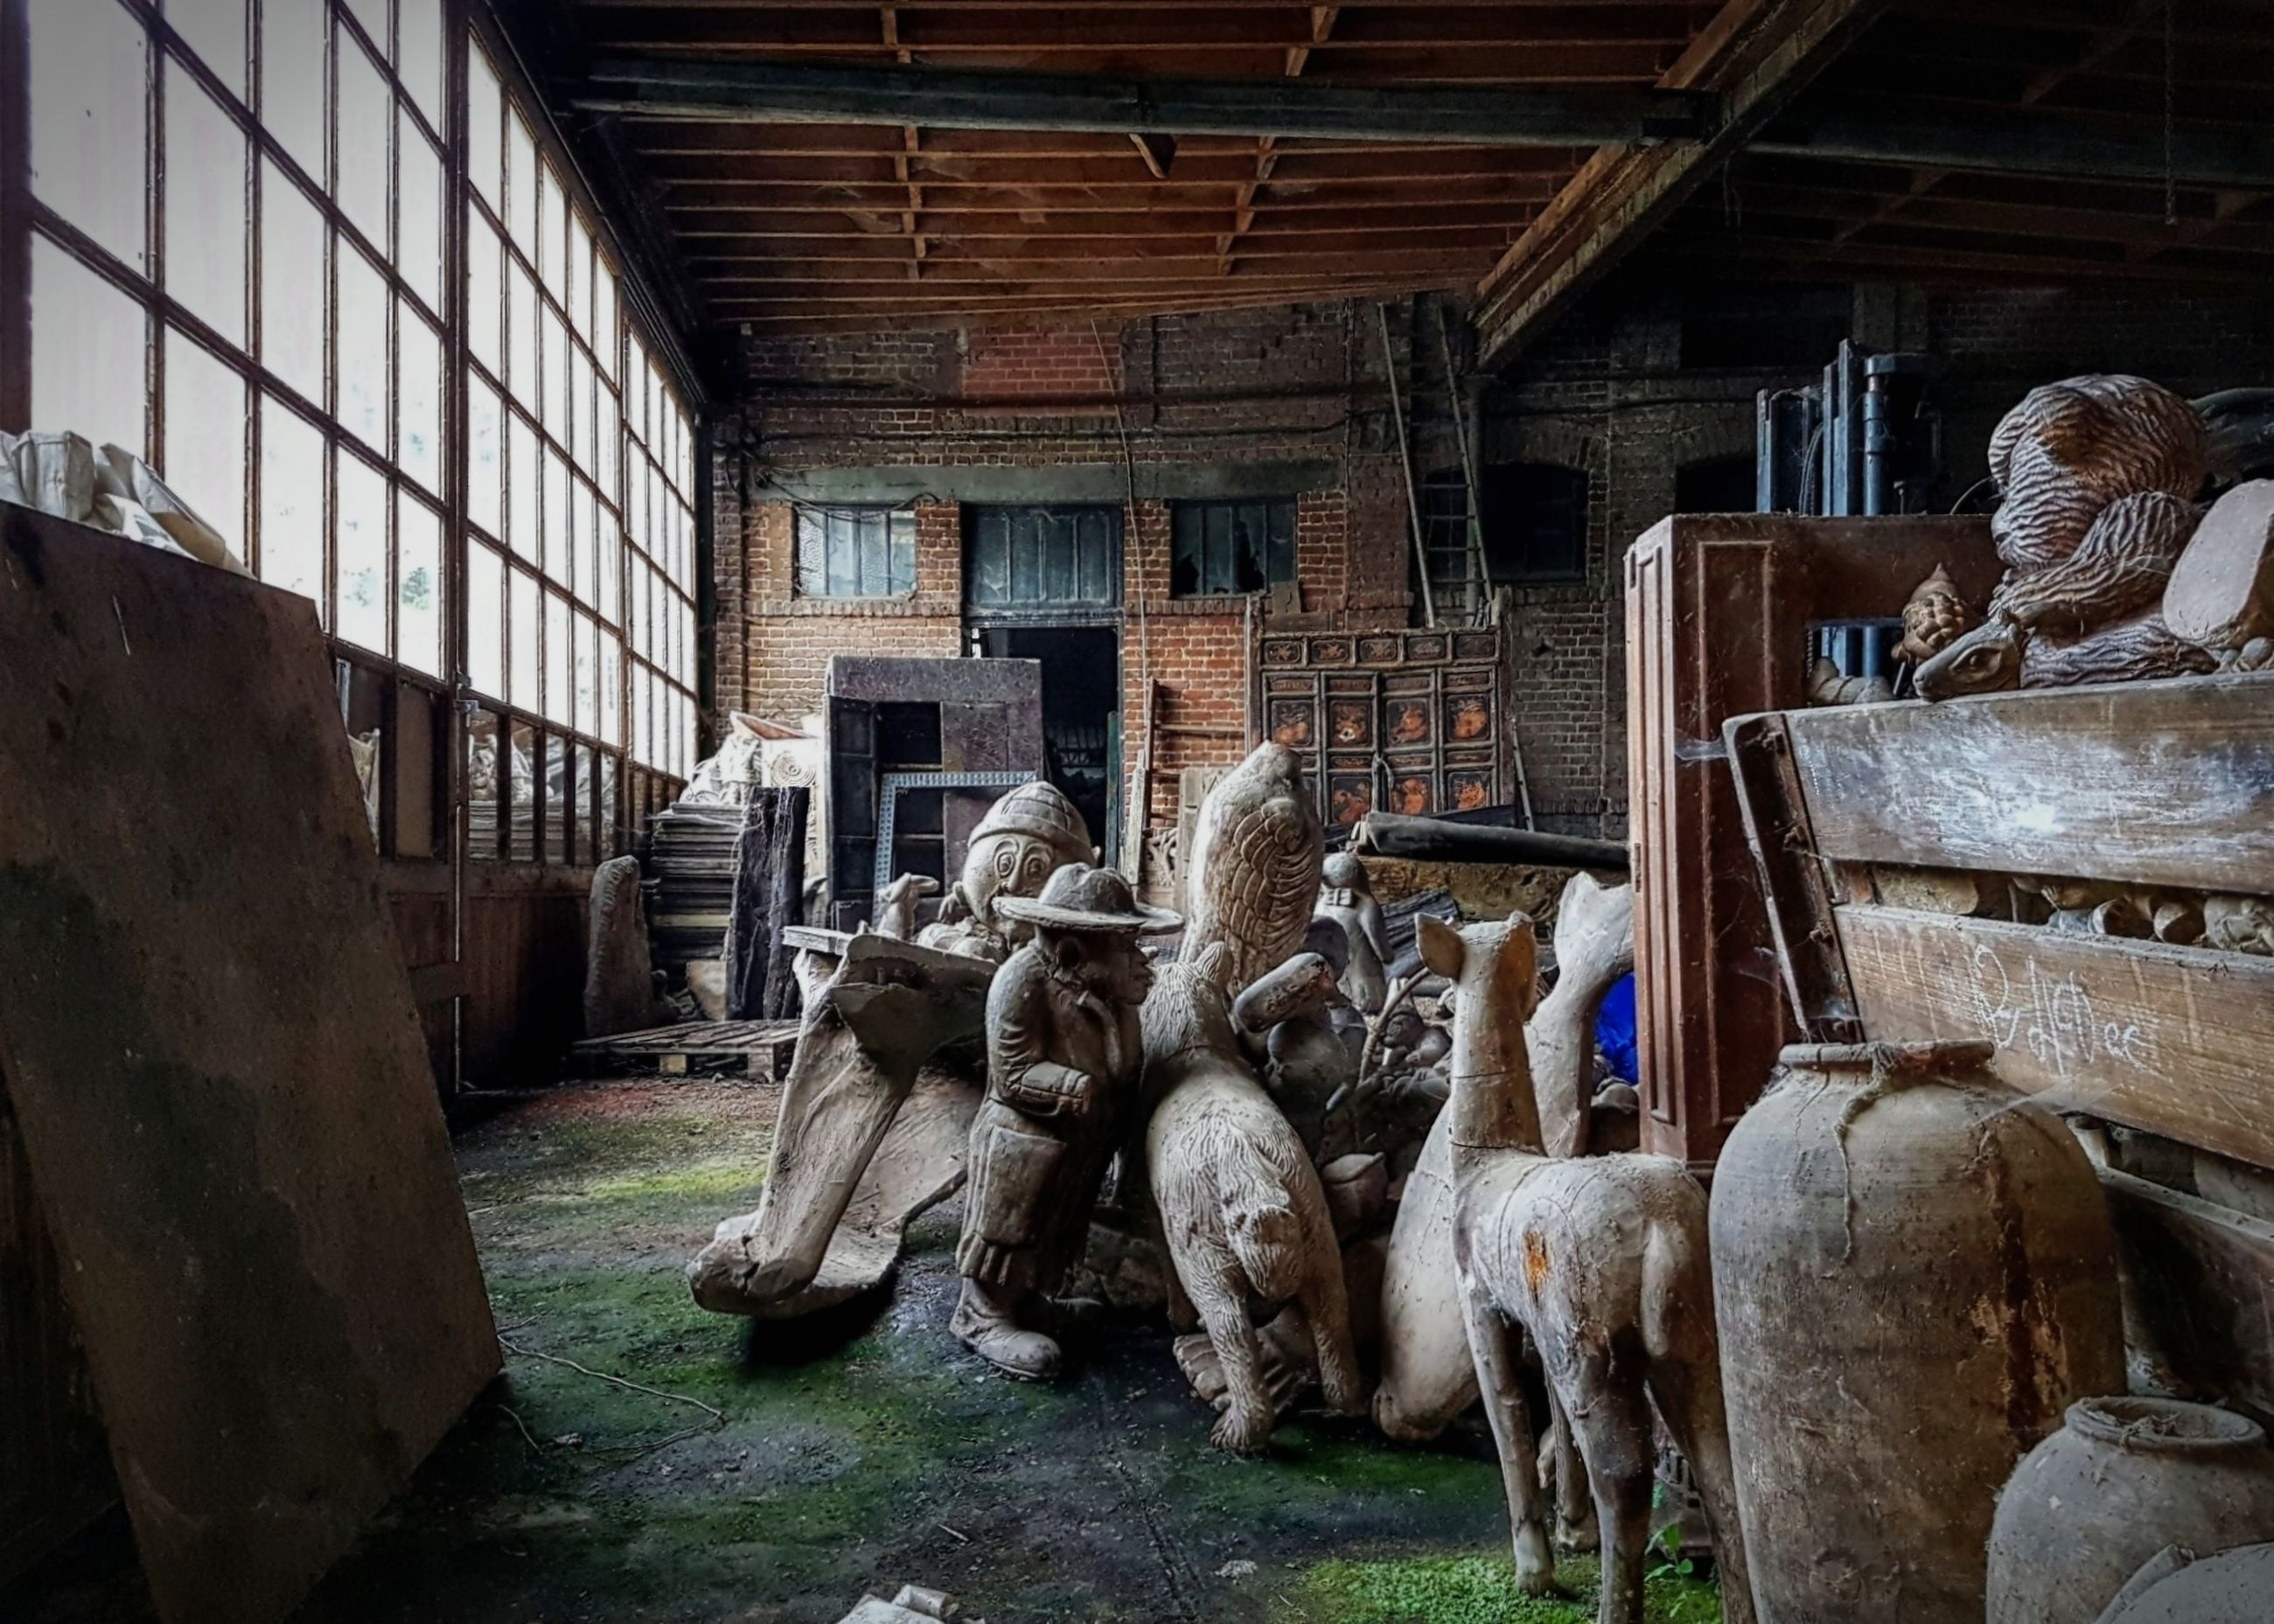 animal, animal themes, architecture, mammal, group of animals, indoors, no people, vertebrate, livestock, domestic animals, day, built structure, domestic, pets, farm, cattle, old, agriculture, wood - material, cow, herbivorous, stable